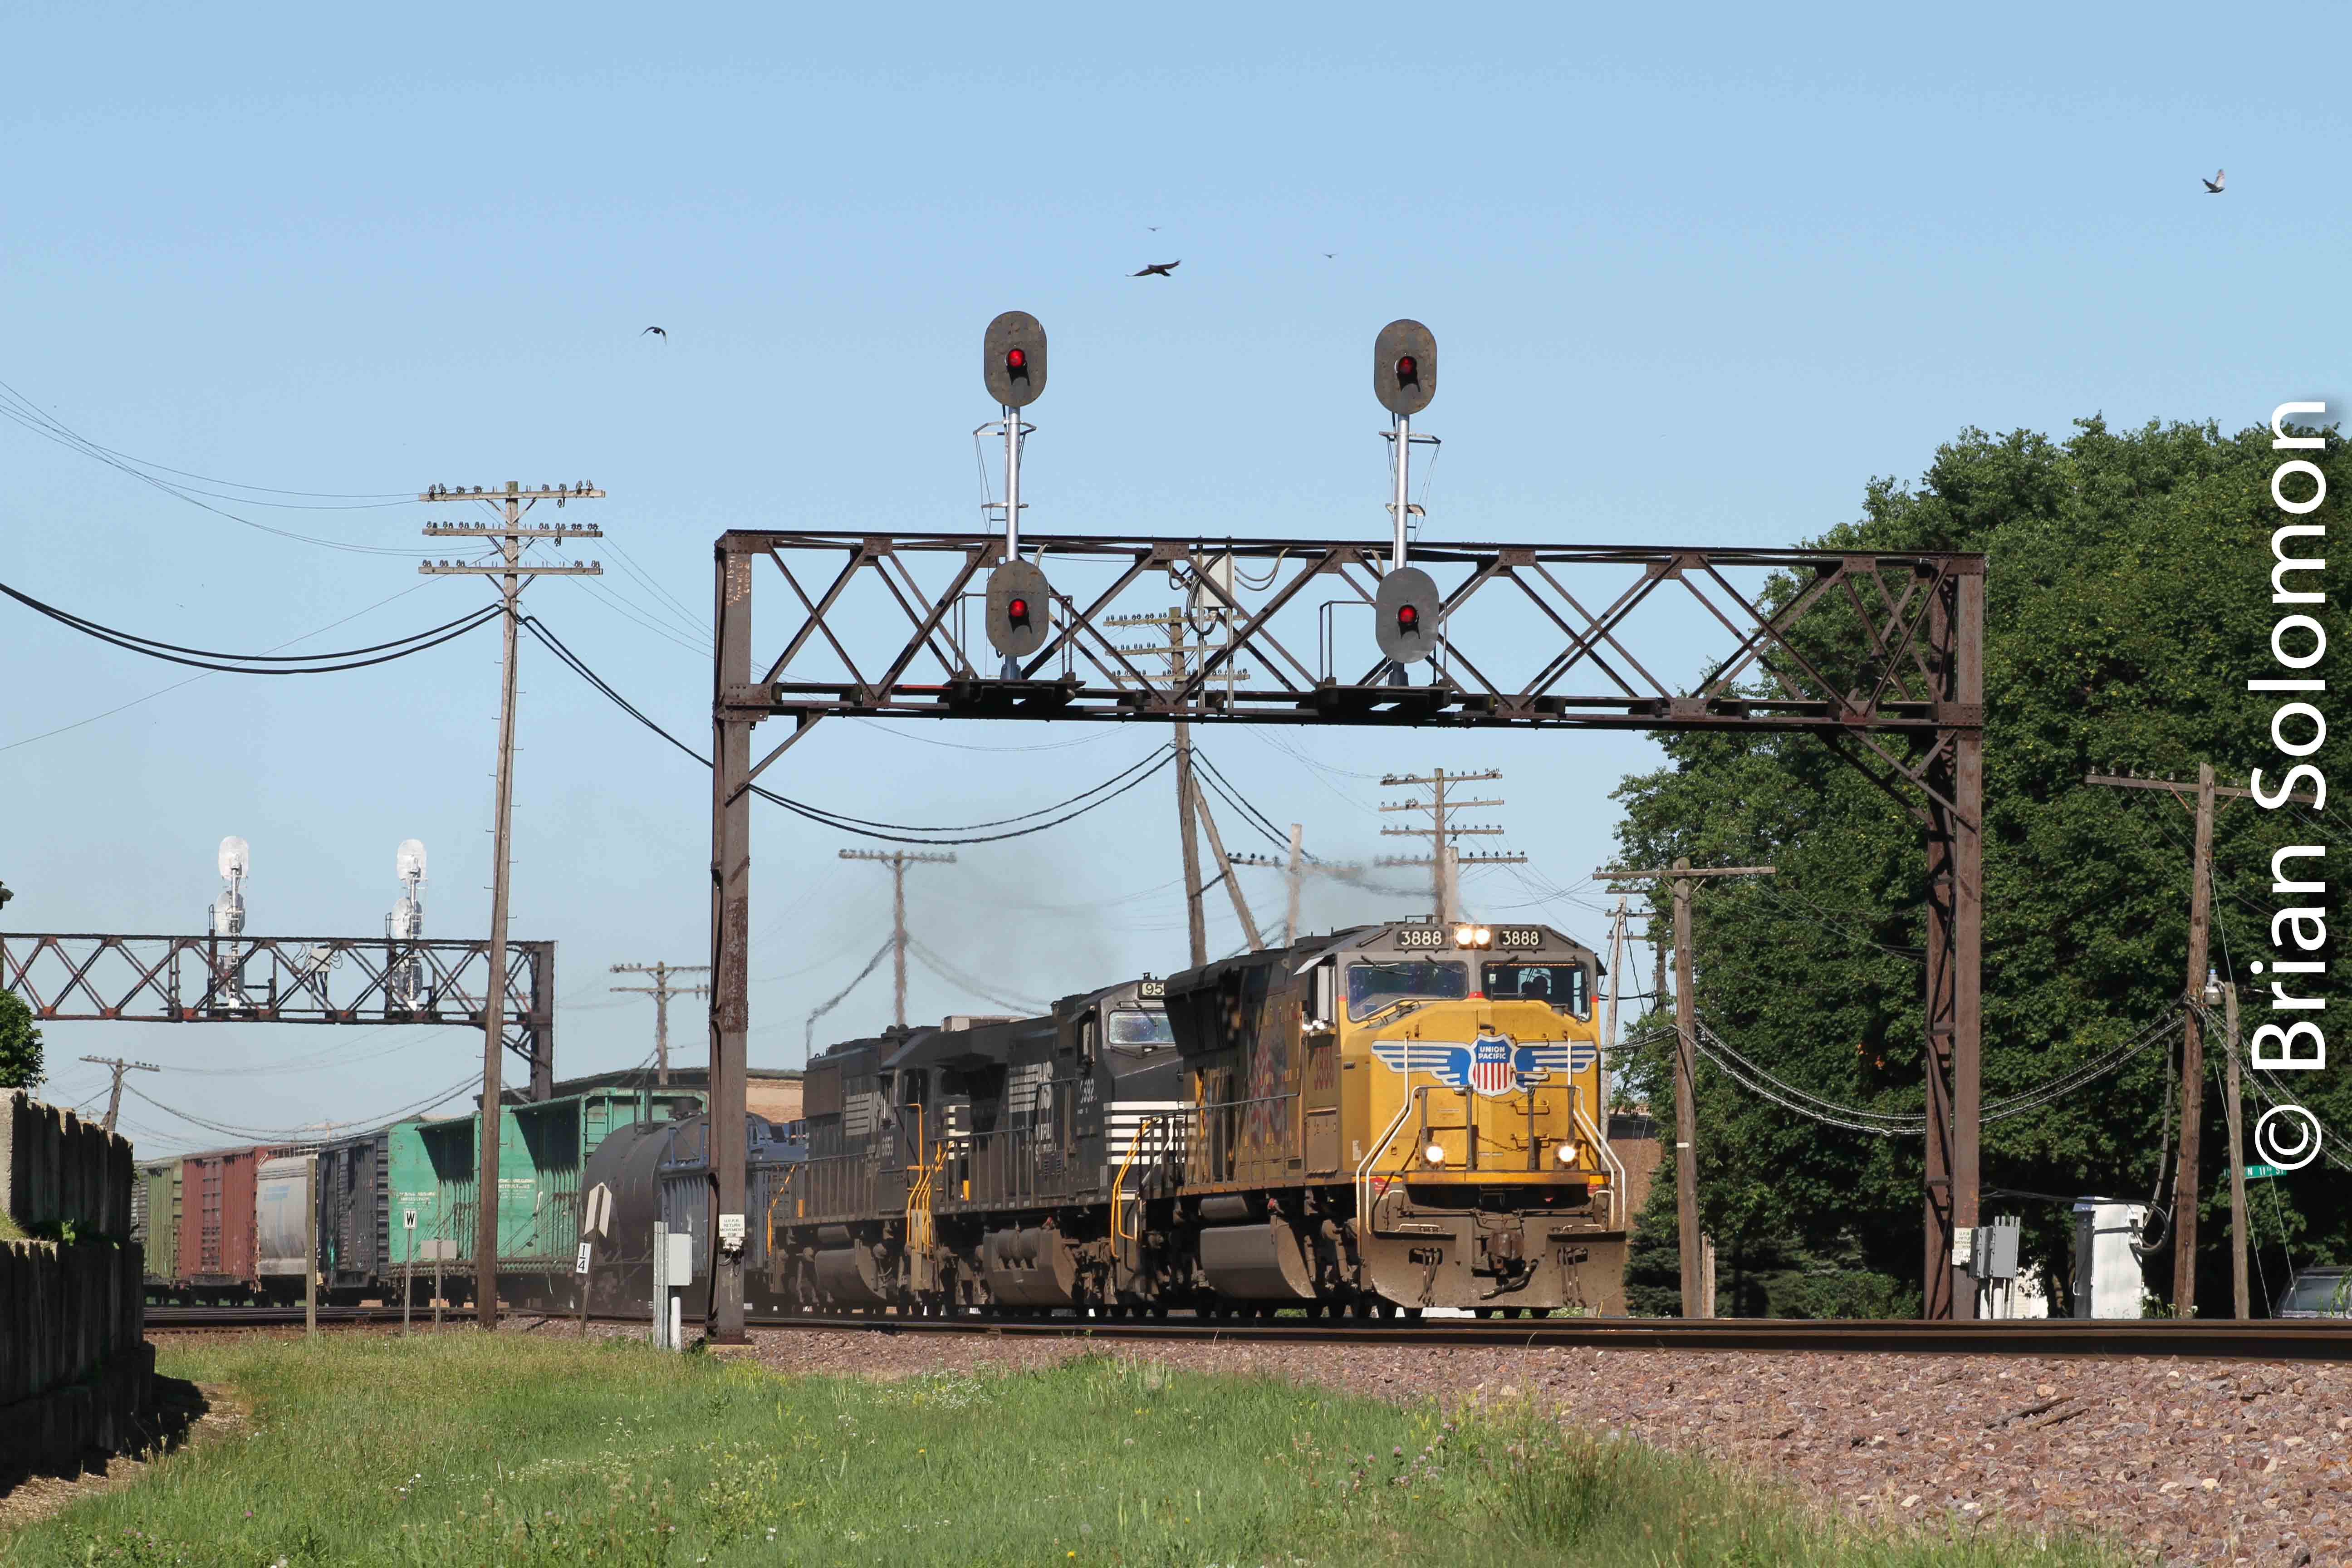 Union Pacific Tracking The Light